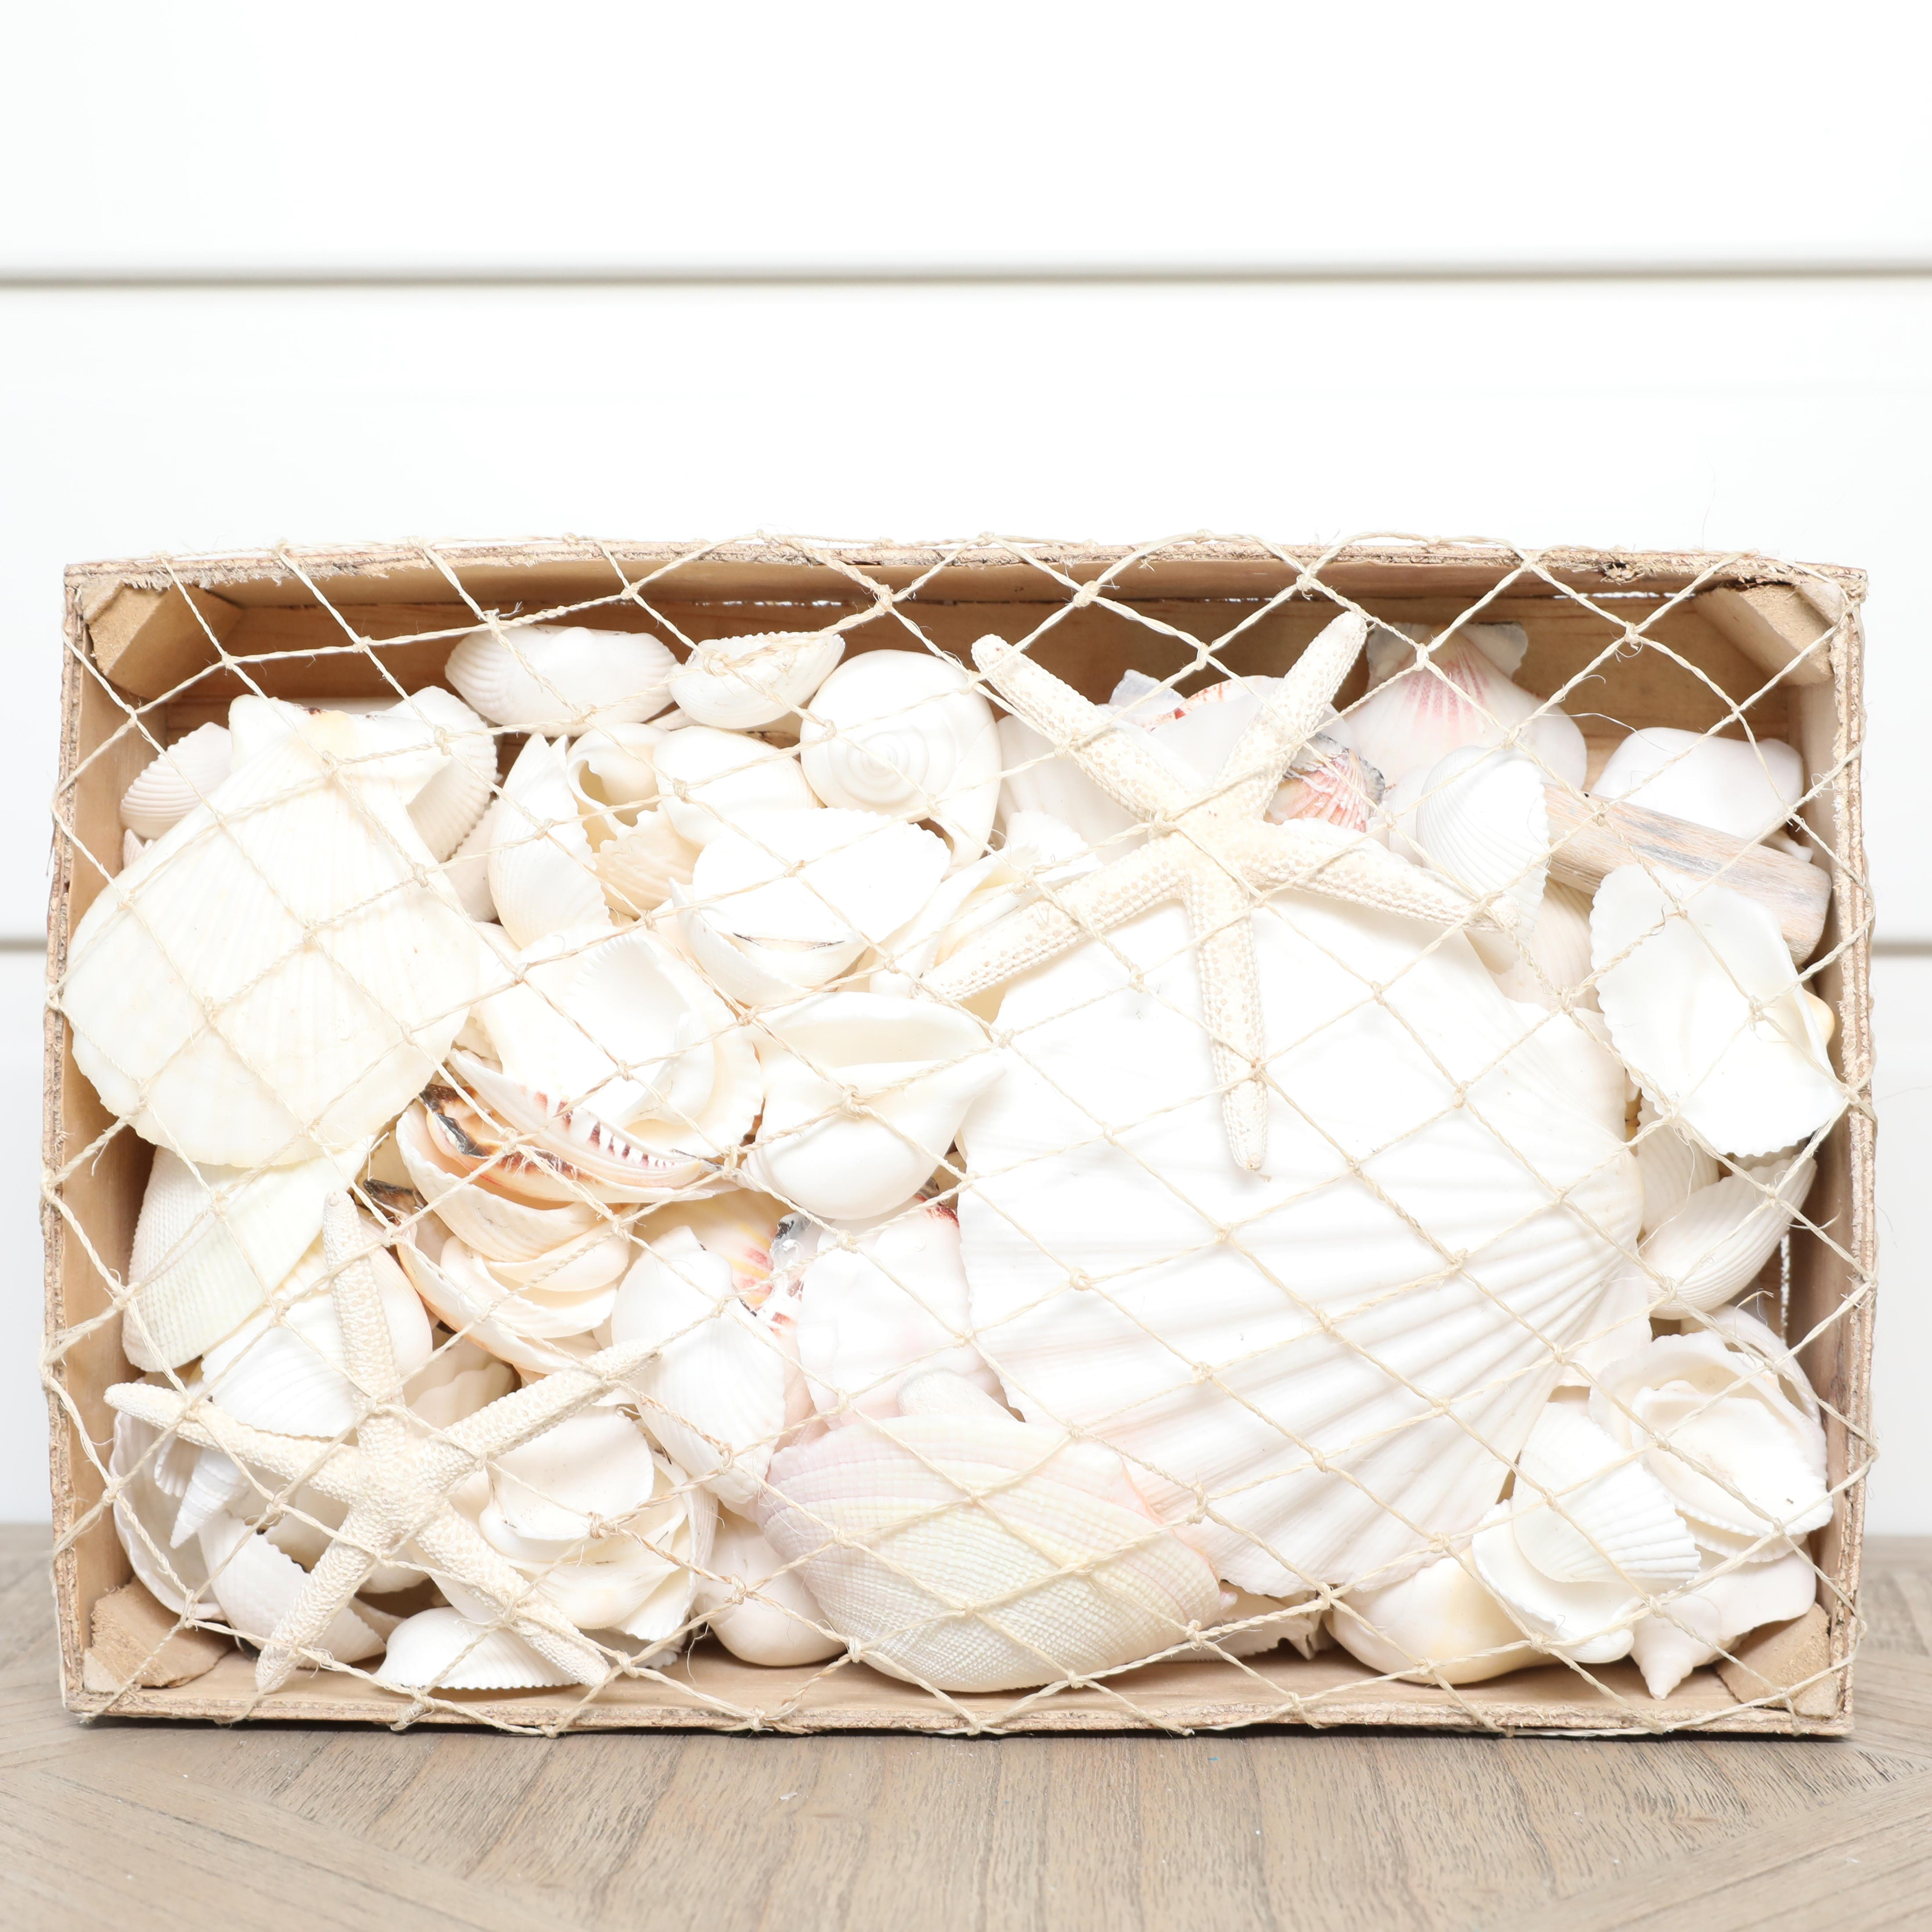 MIXED WHITE SHELLS & STARFISH IN A BOX